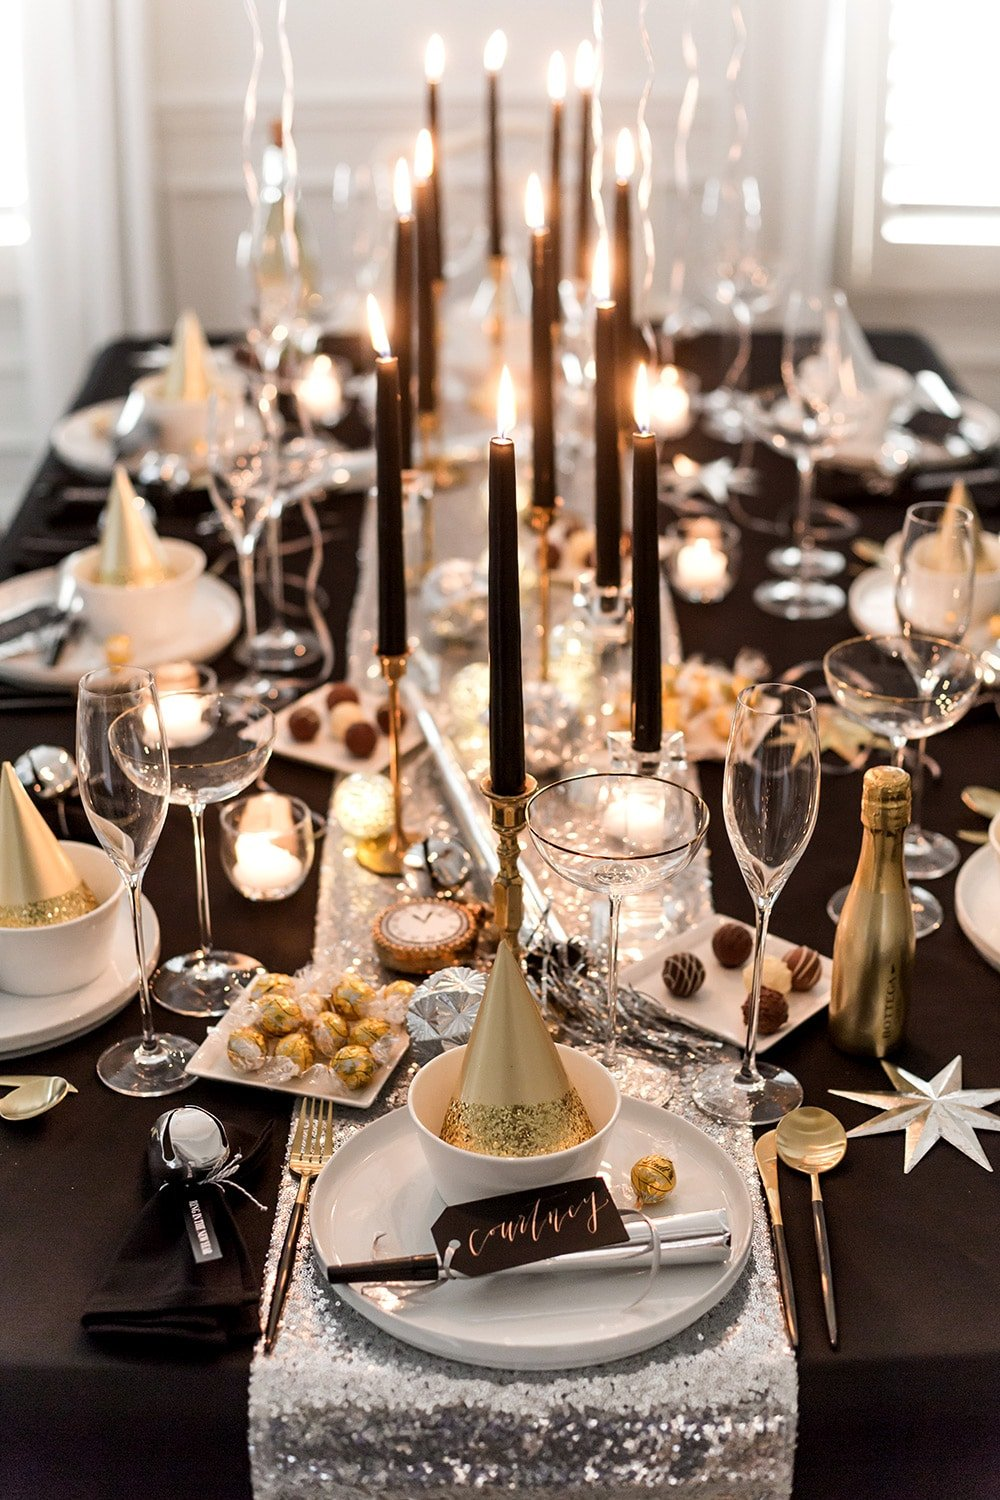 How to Host a New Year's Eve Dinner Party